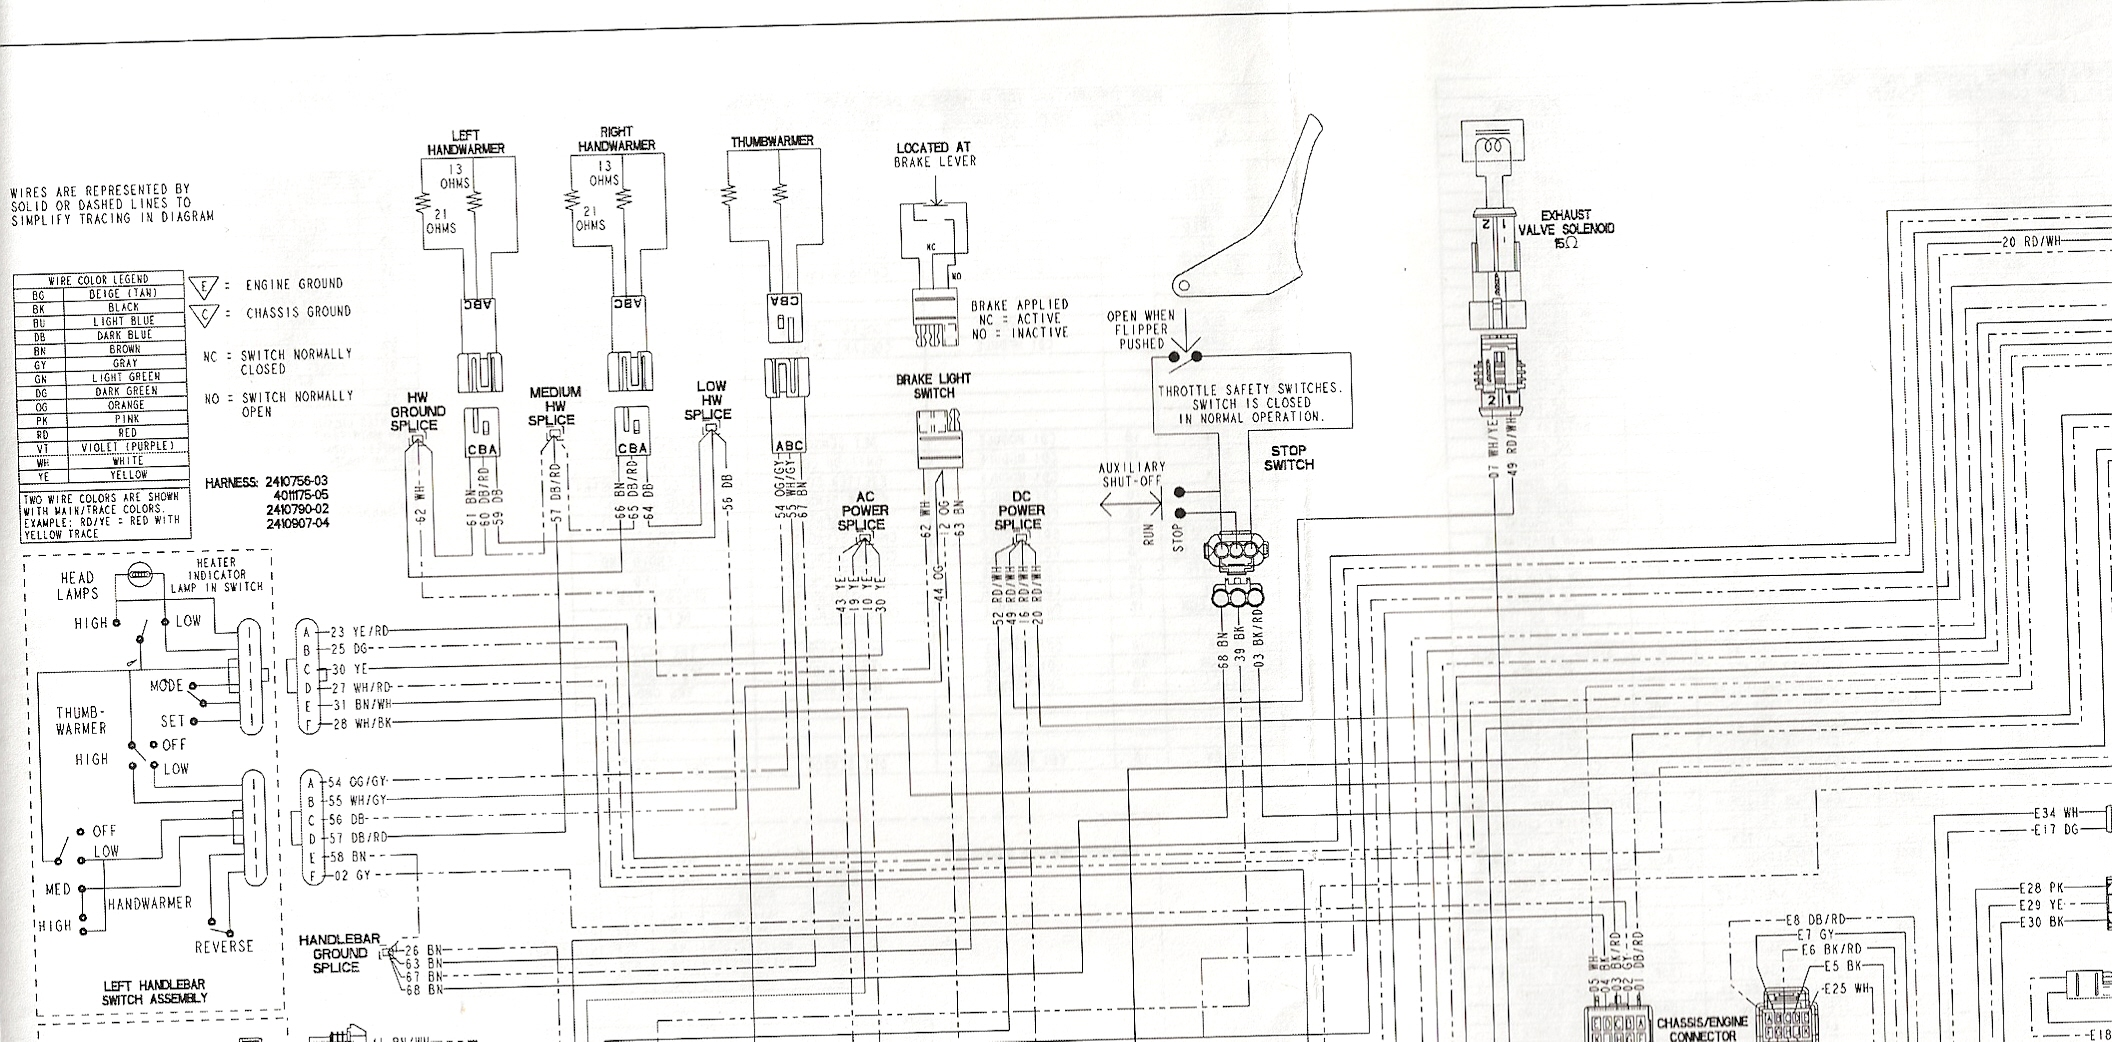 Wiring Diagram For 2002 Polaris 325 Magnum Polaris 325